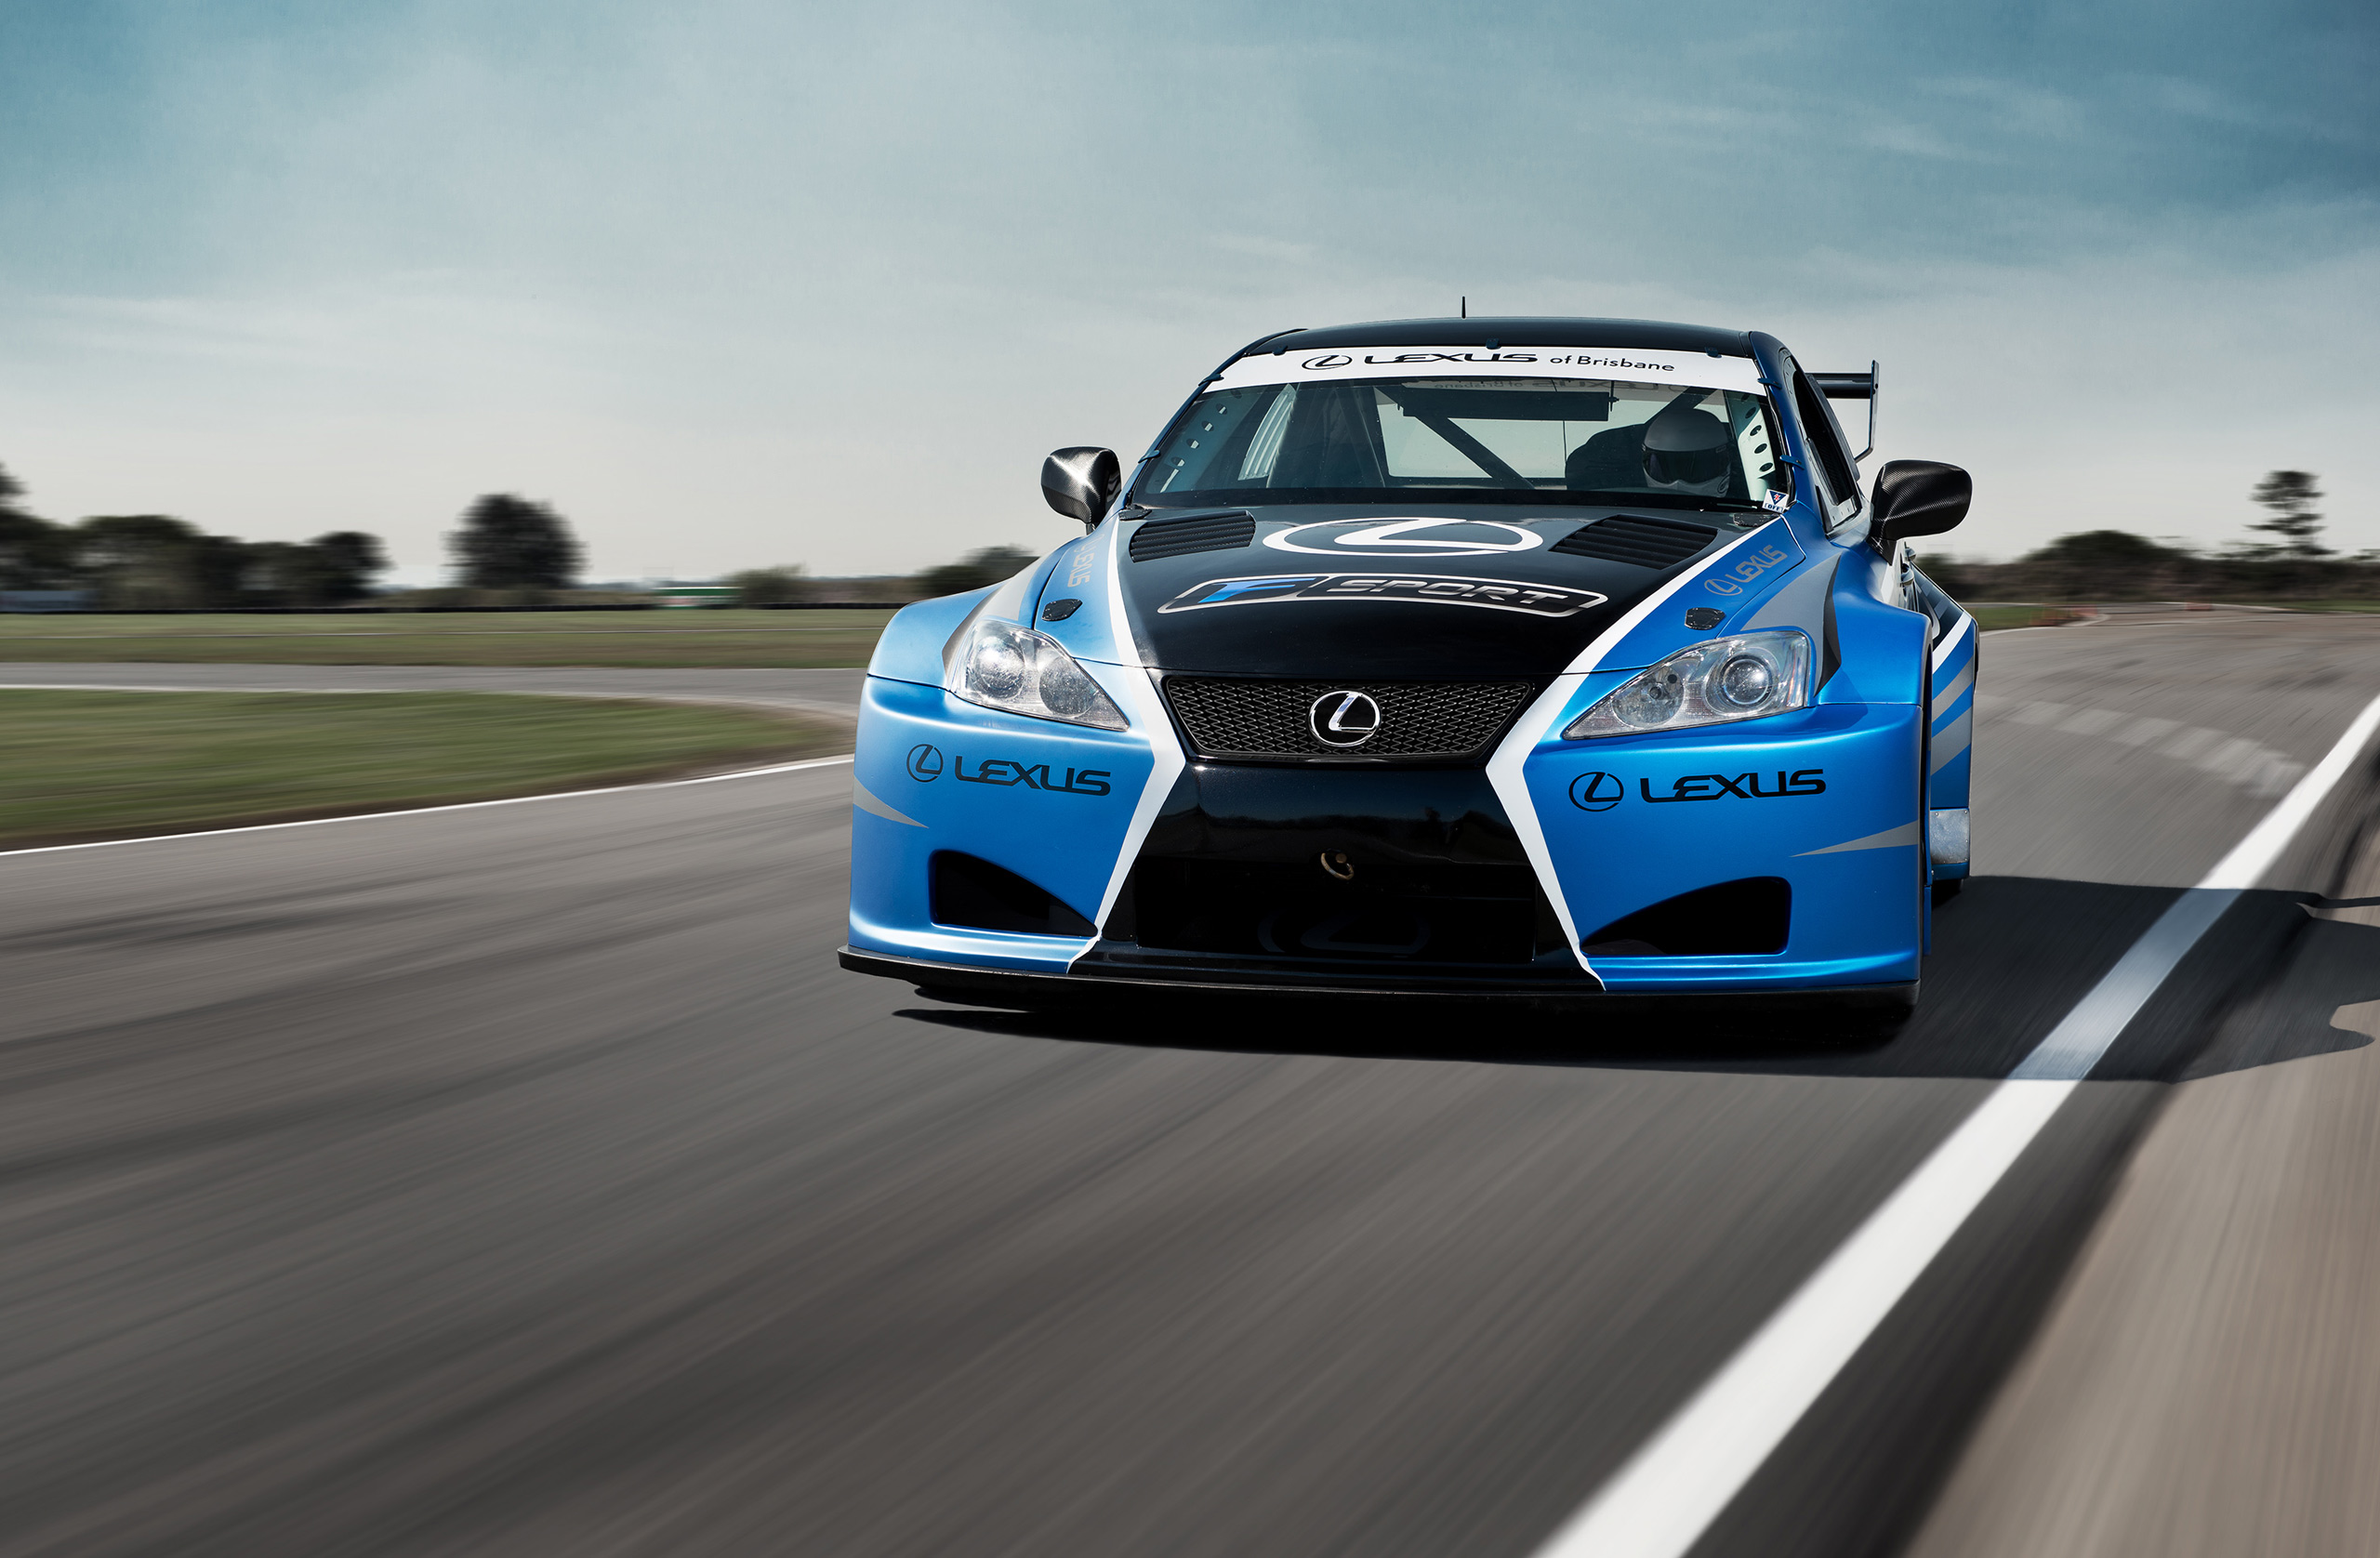 https://lexusenthusiast.com/images/weblog/12-12-21-lexus-is-f-racing-car-australia.jpg